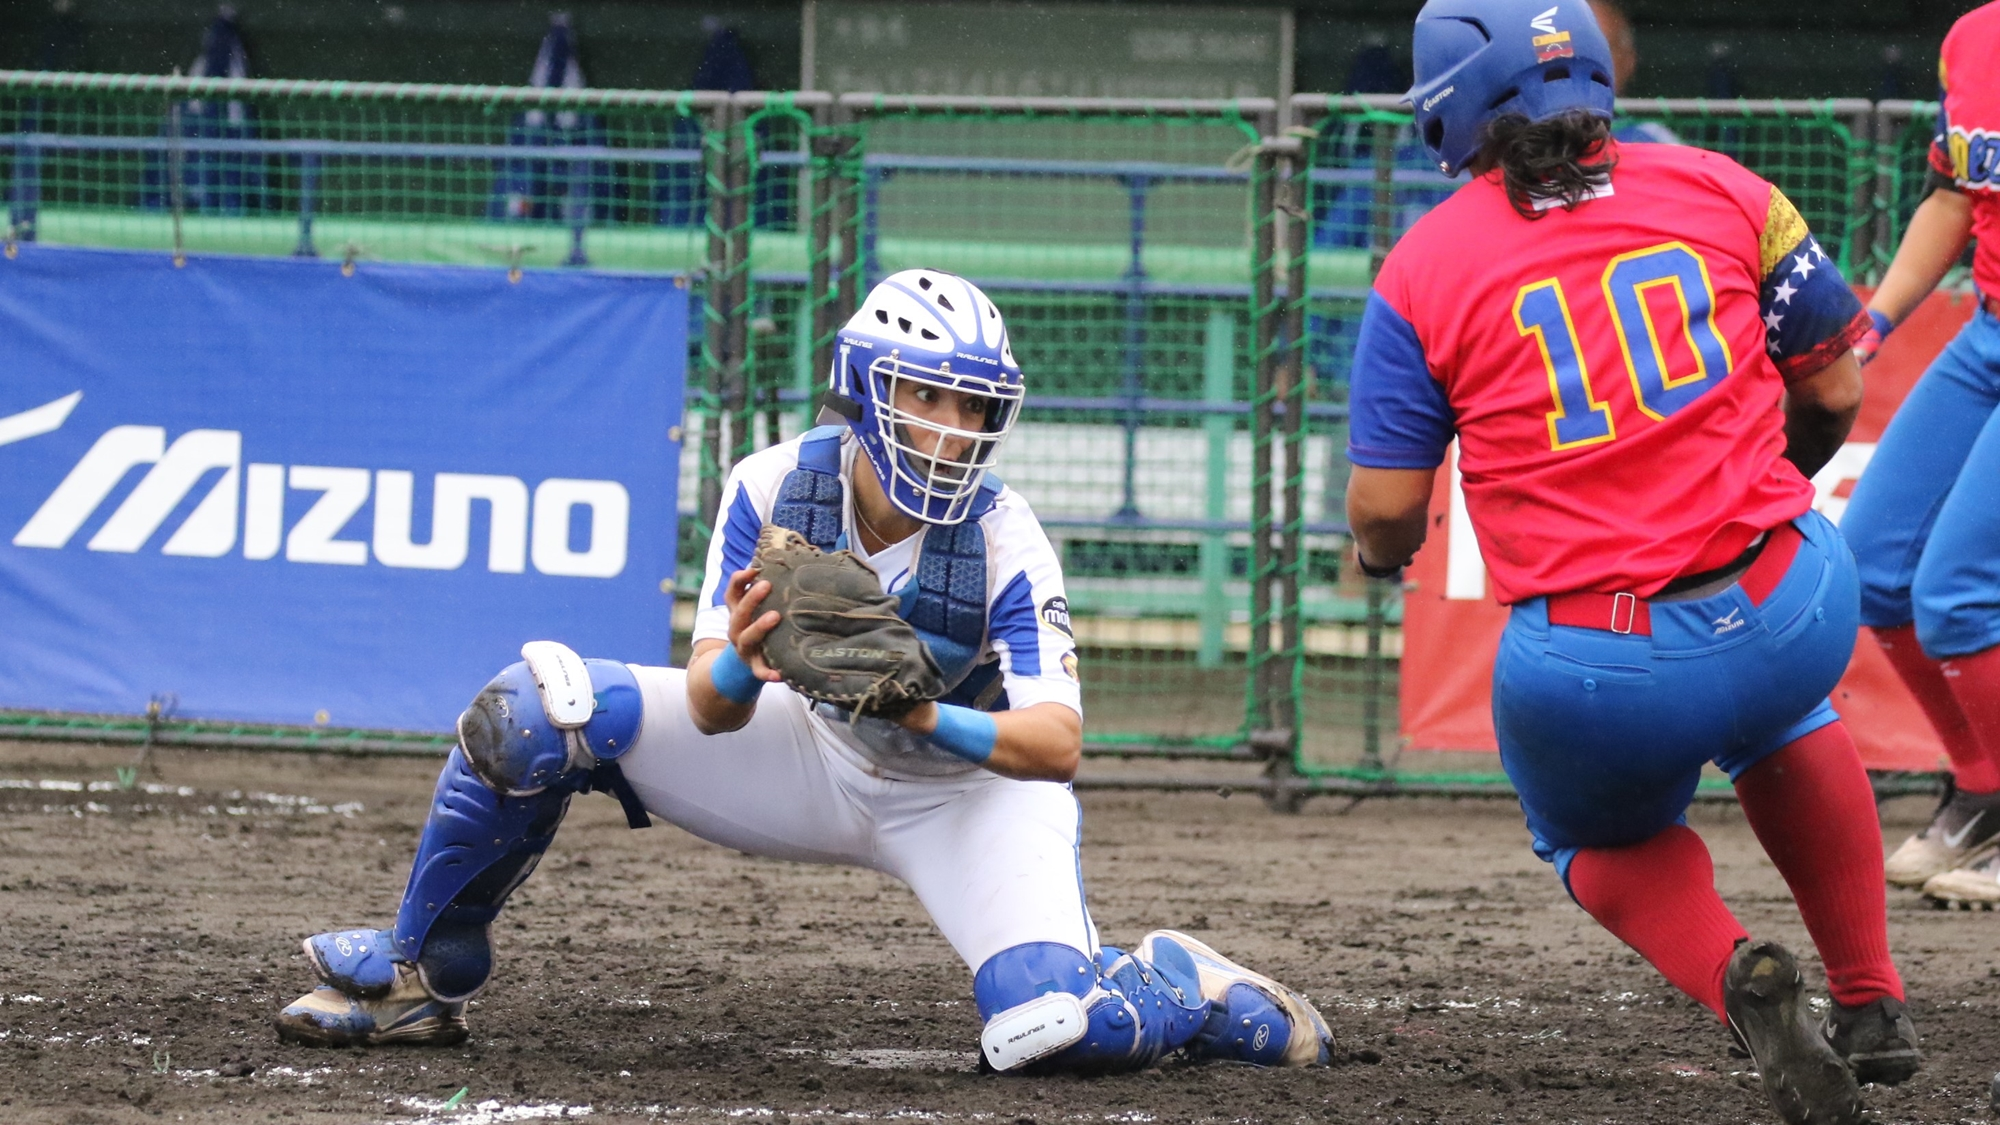 In the bottom of the fourth she needed some help from her defense. The third out came at the home plate on a perfect throw by center fielder Vigna to catcher Gasparotto